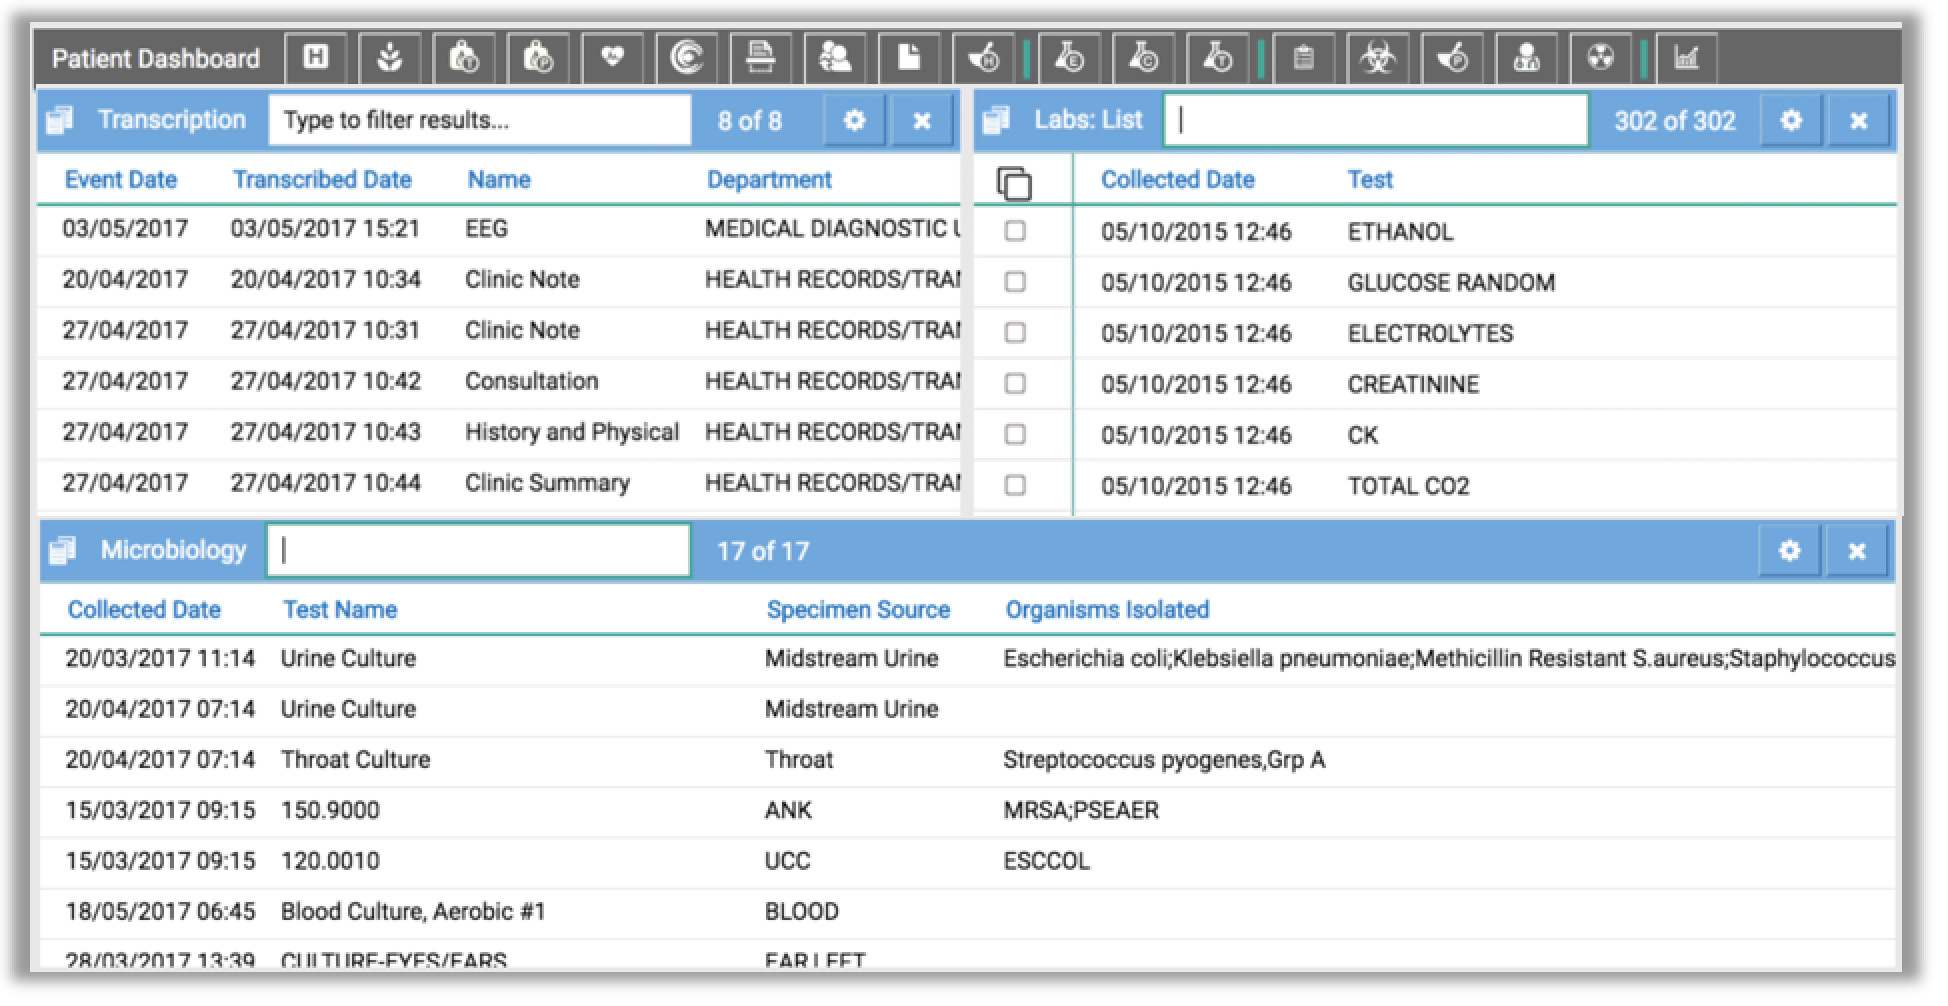 Image shows microbiology module placed below the labs and transcription module